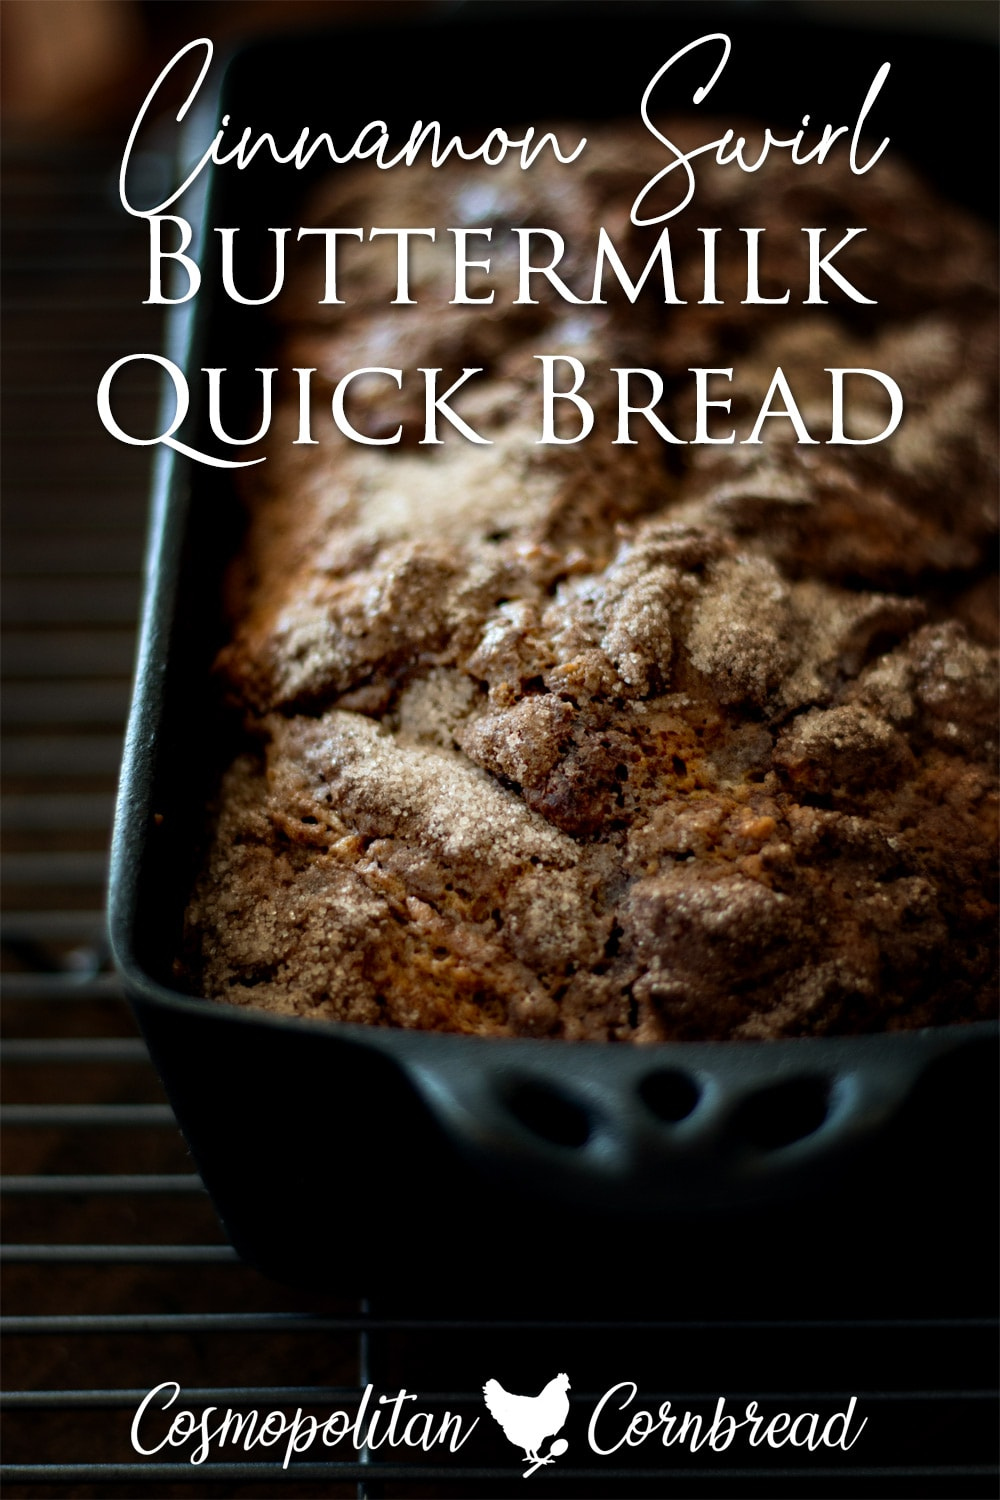 Super moist quick bread with a swirl of cinnamon and crunchy topping. This is my most popular quick bread recipe of all time.